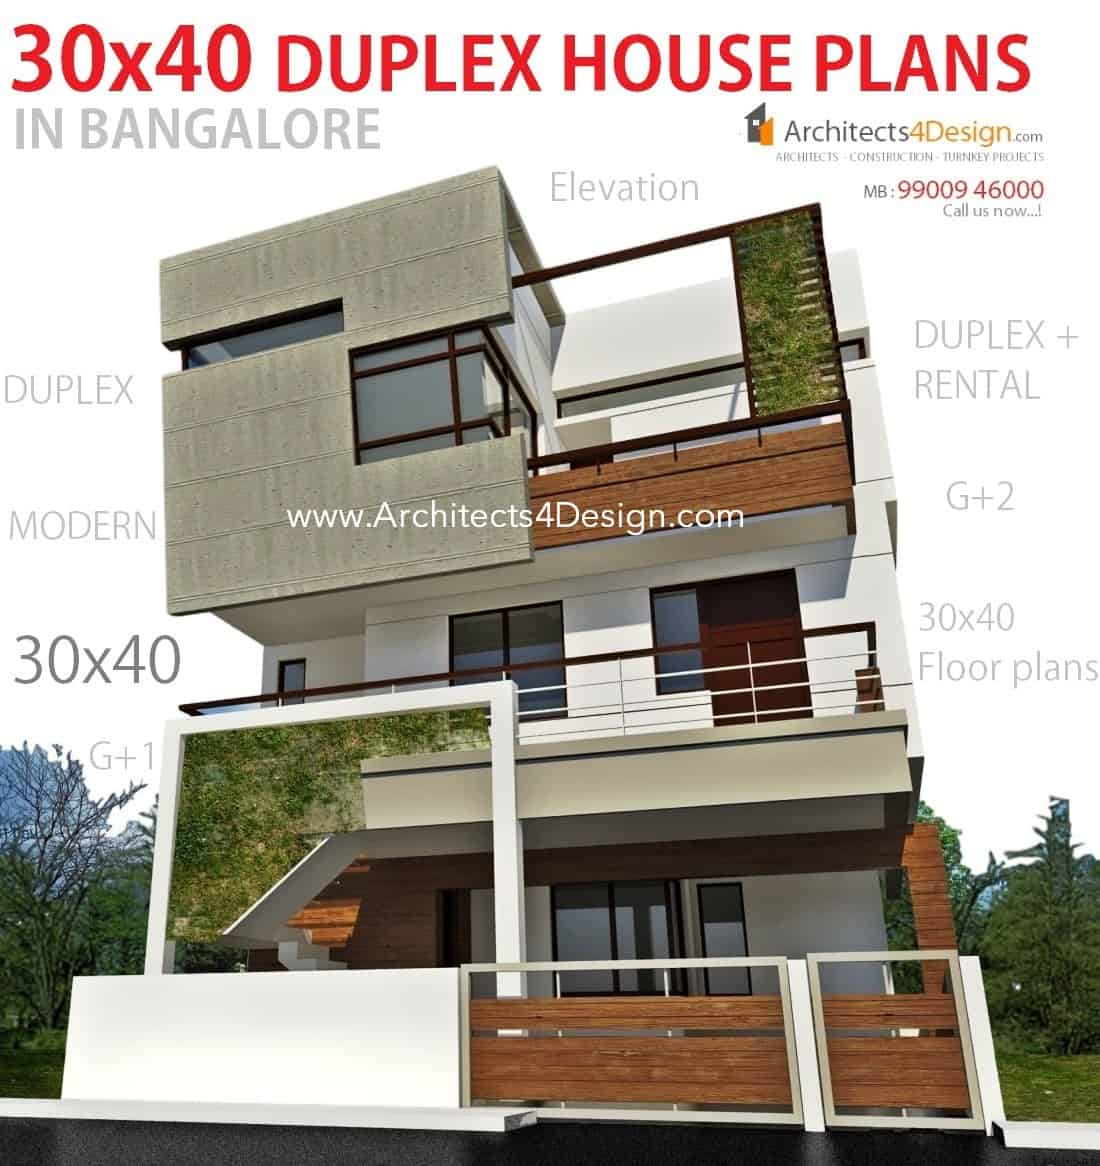 Appealing 30 x 40 duplex house plans pictures best for House plans for 30x40 site